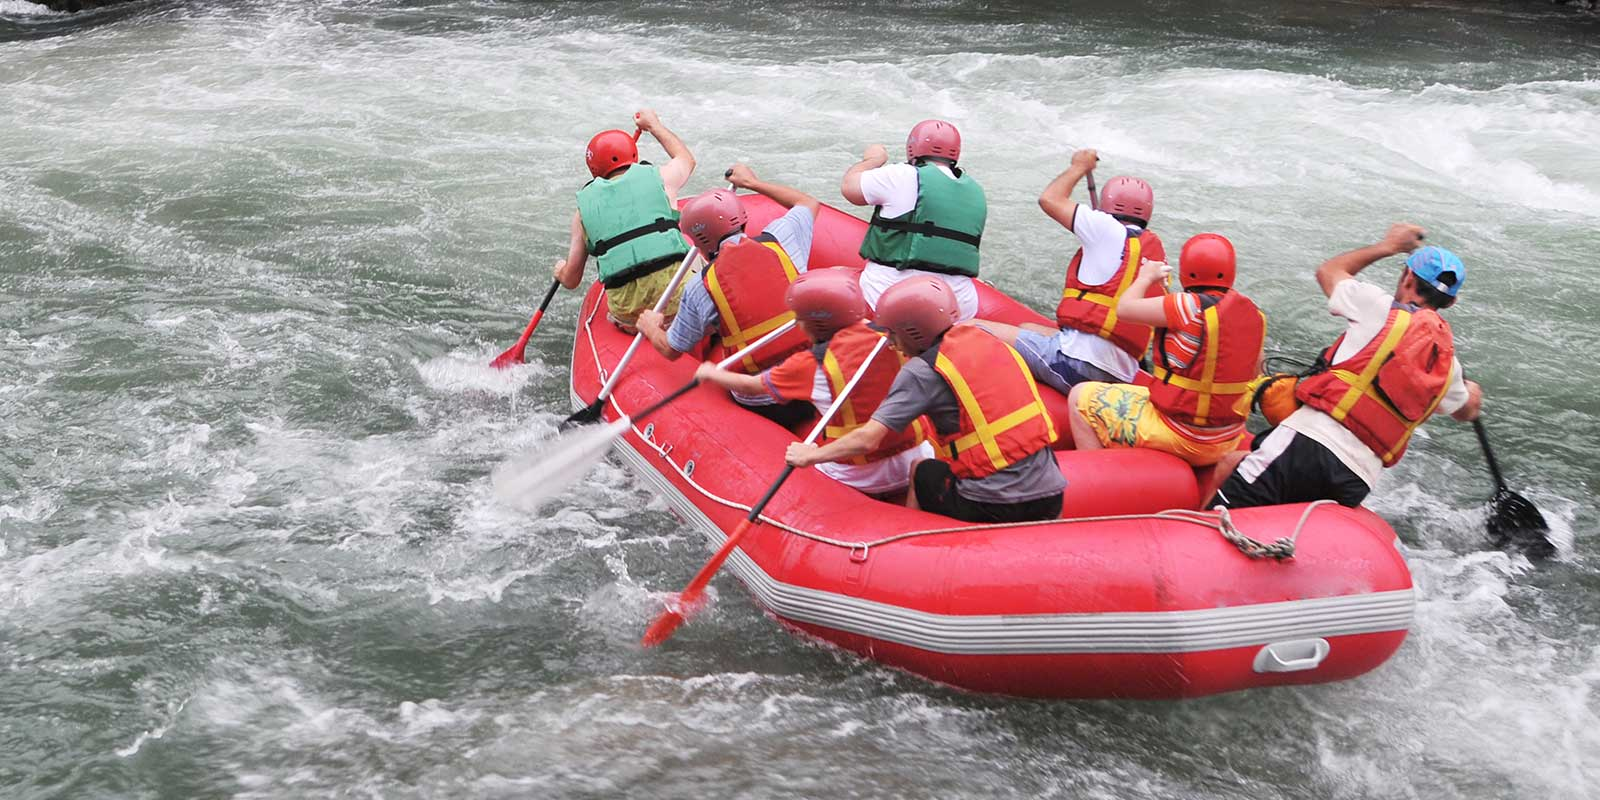 Group rafting in rapids in the river